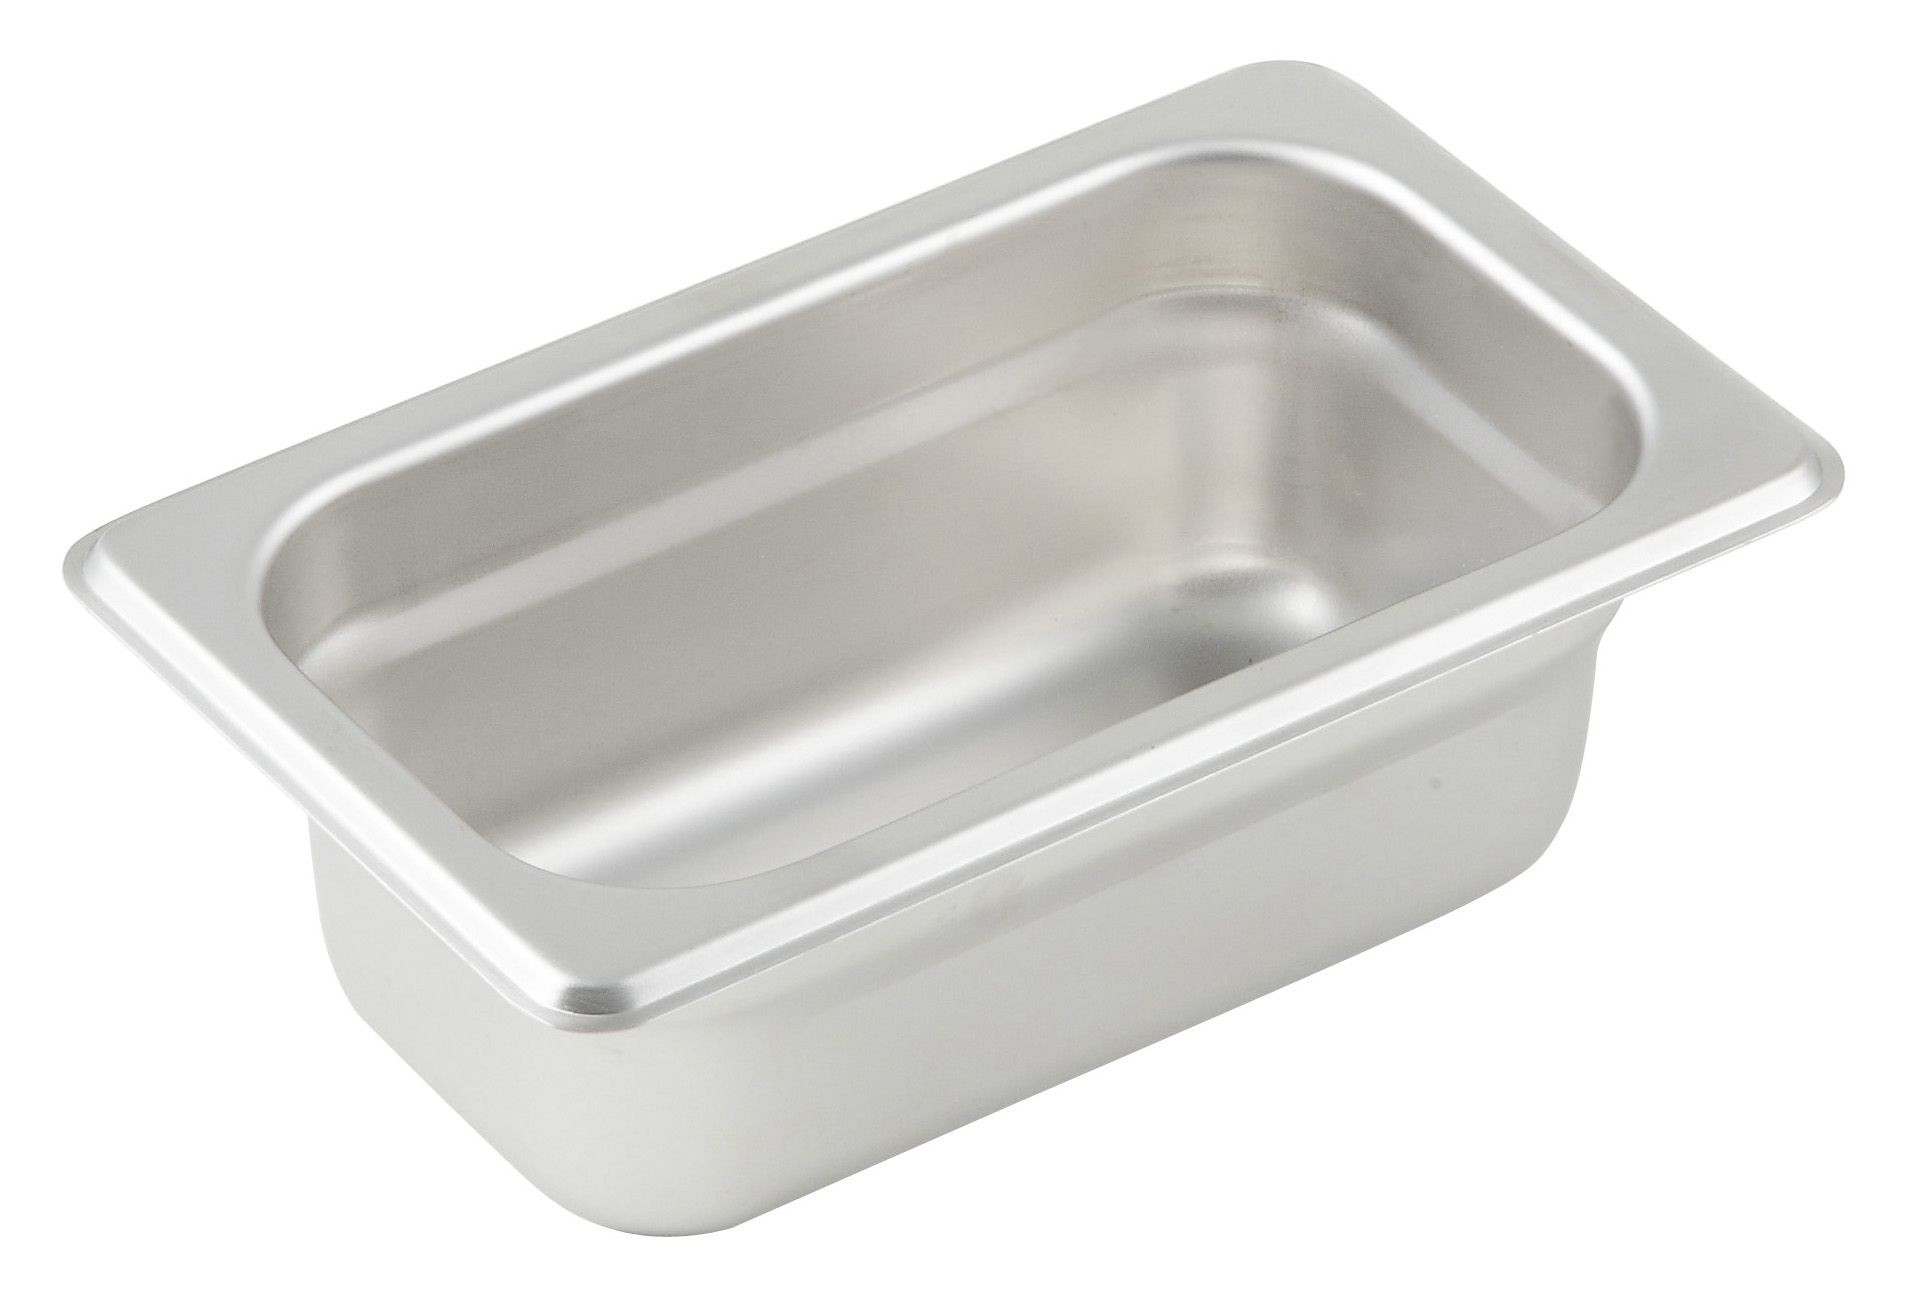 "Winco SPJM-902 1/9 Size Anti-Jam 24 Gauge Steam Table Pan 2-1/2"" Deep"